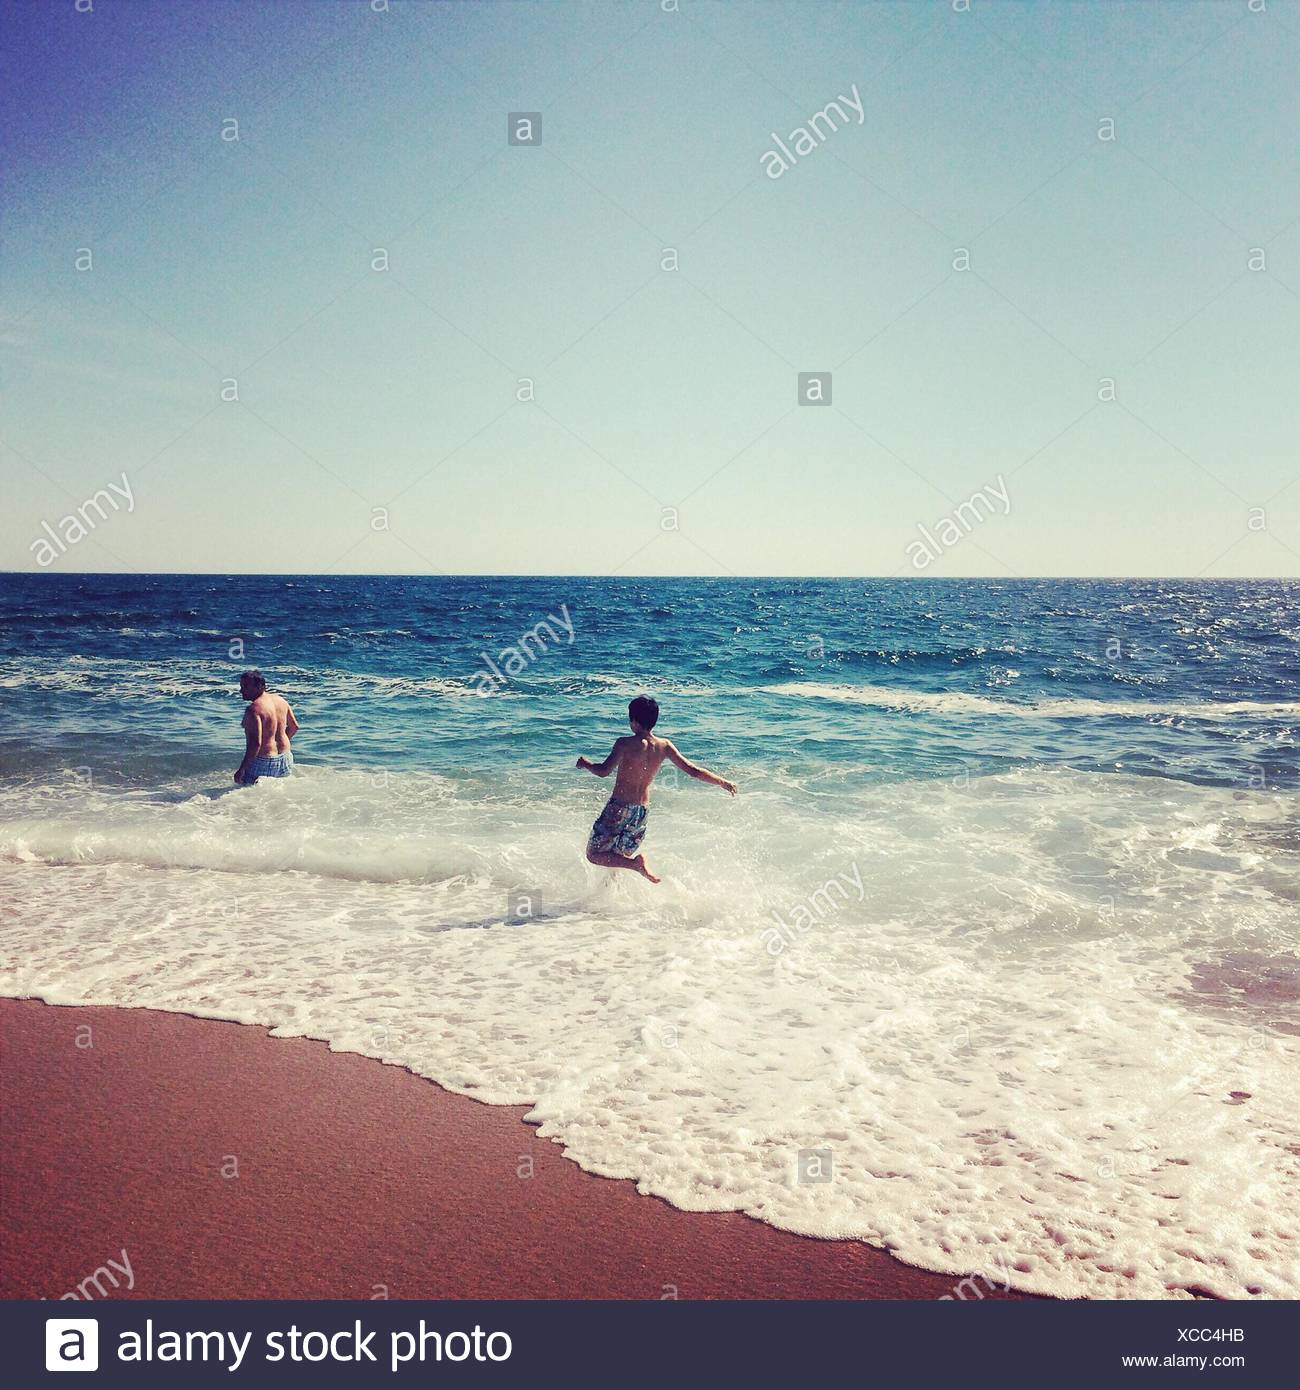 People In Sea - Stock Image